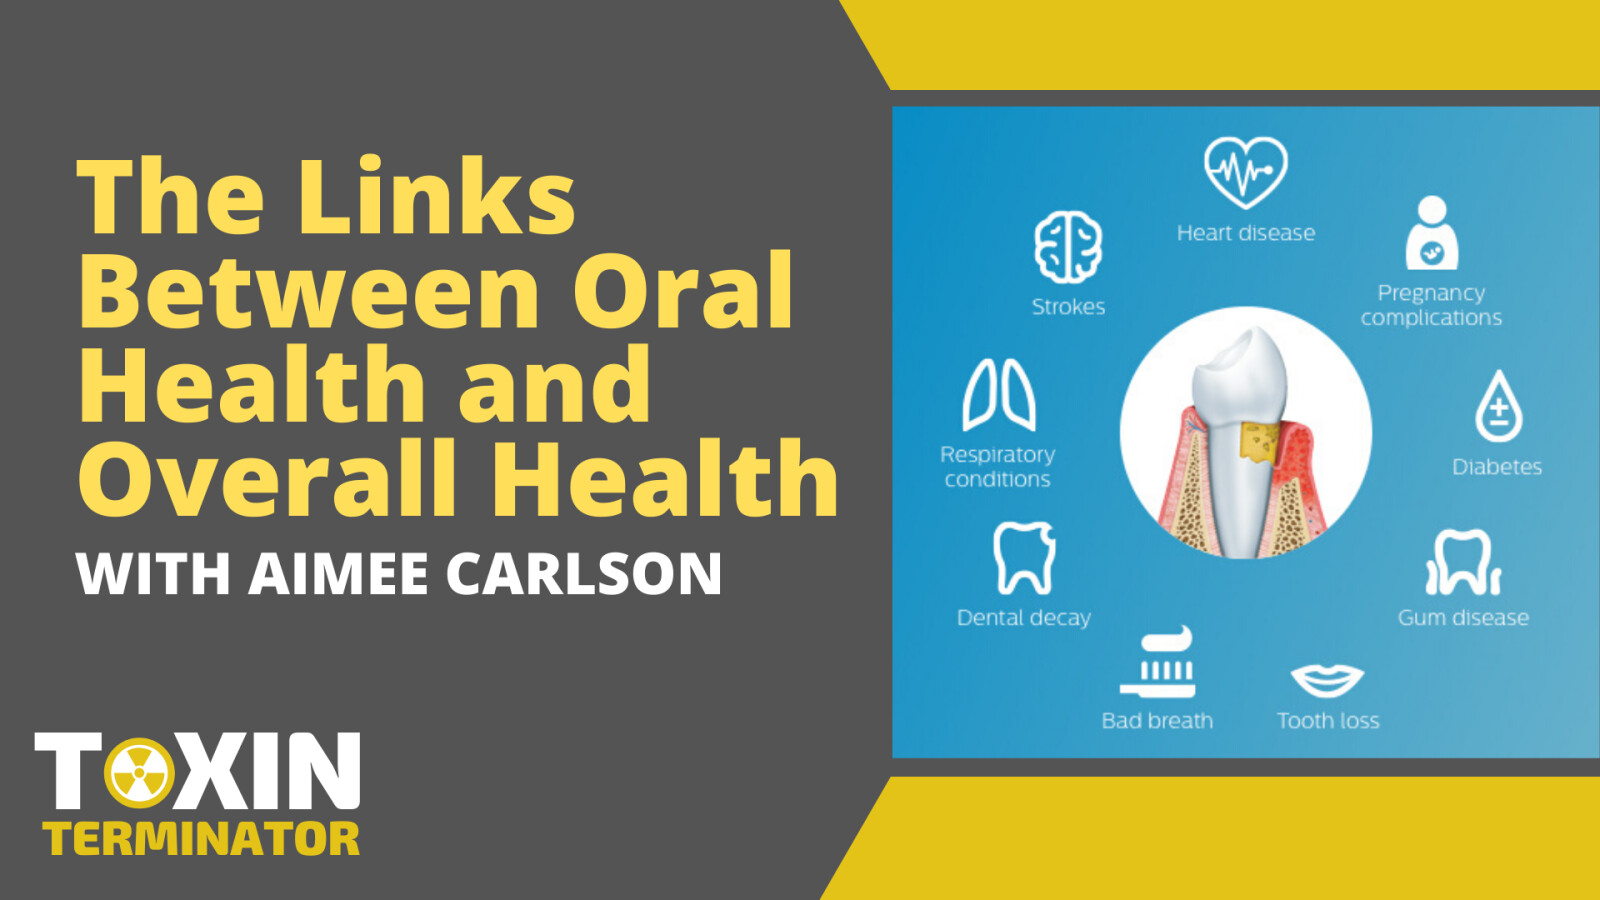 The Links Between Oral Health and Overall Health